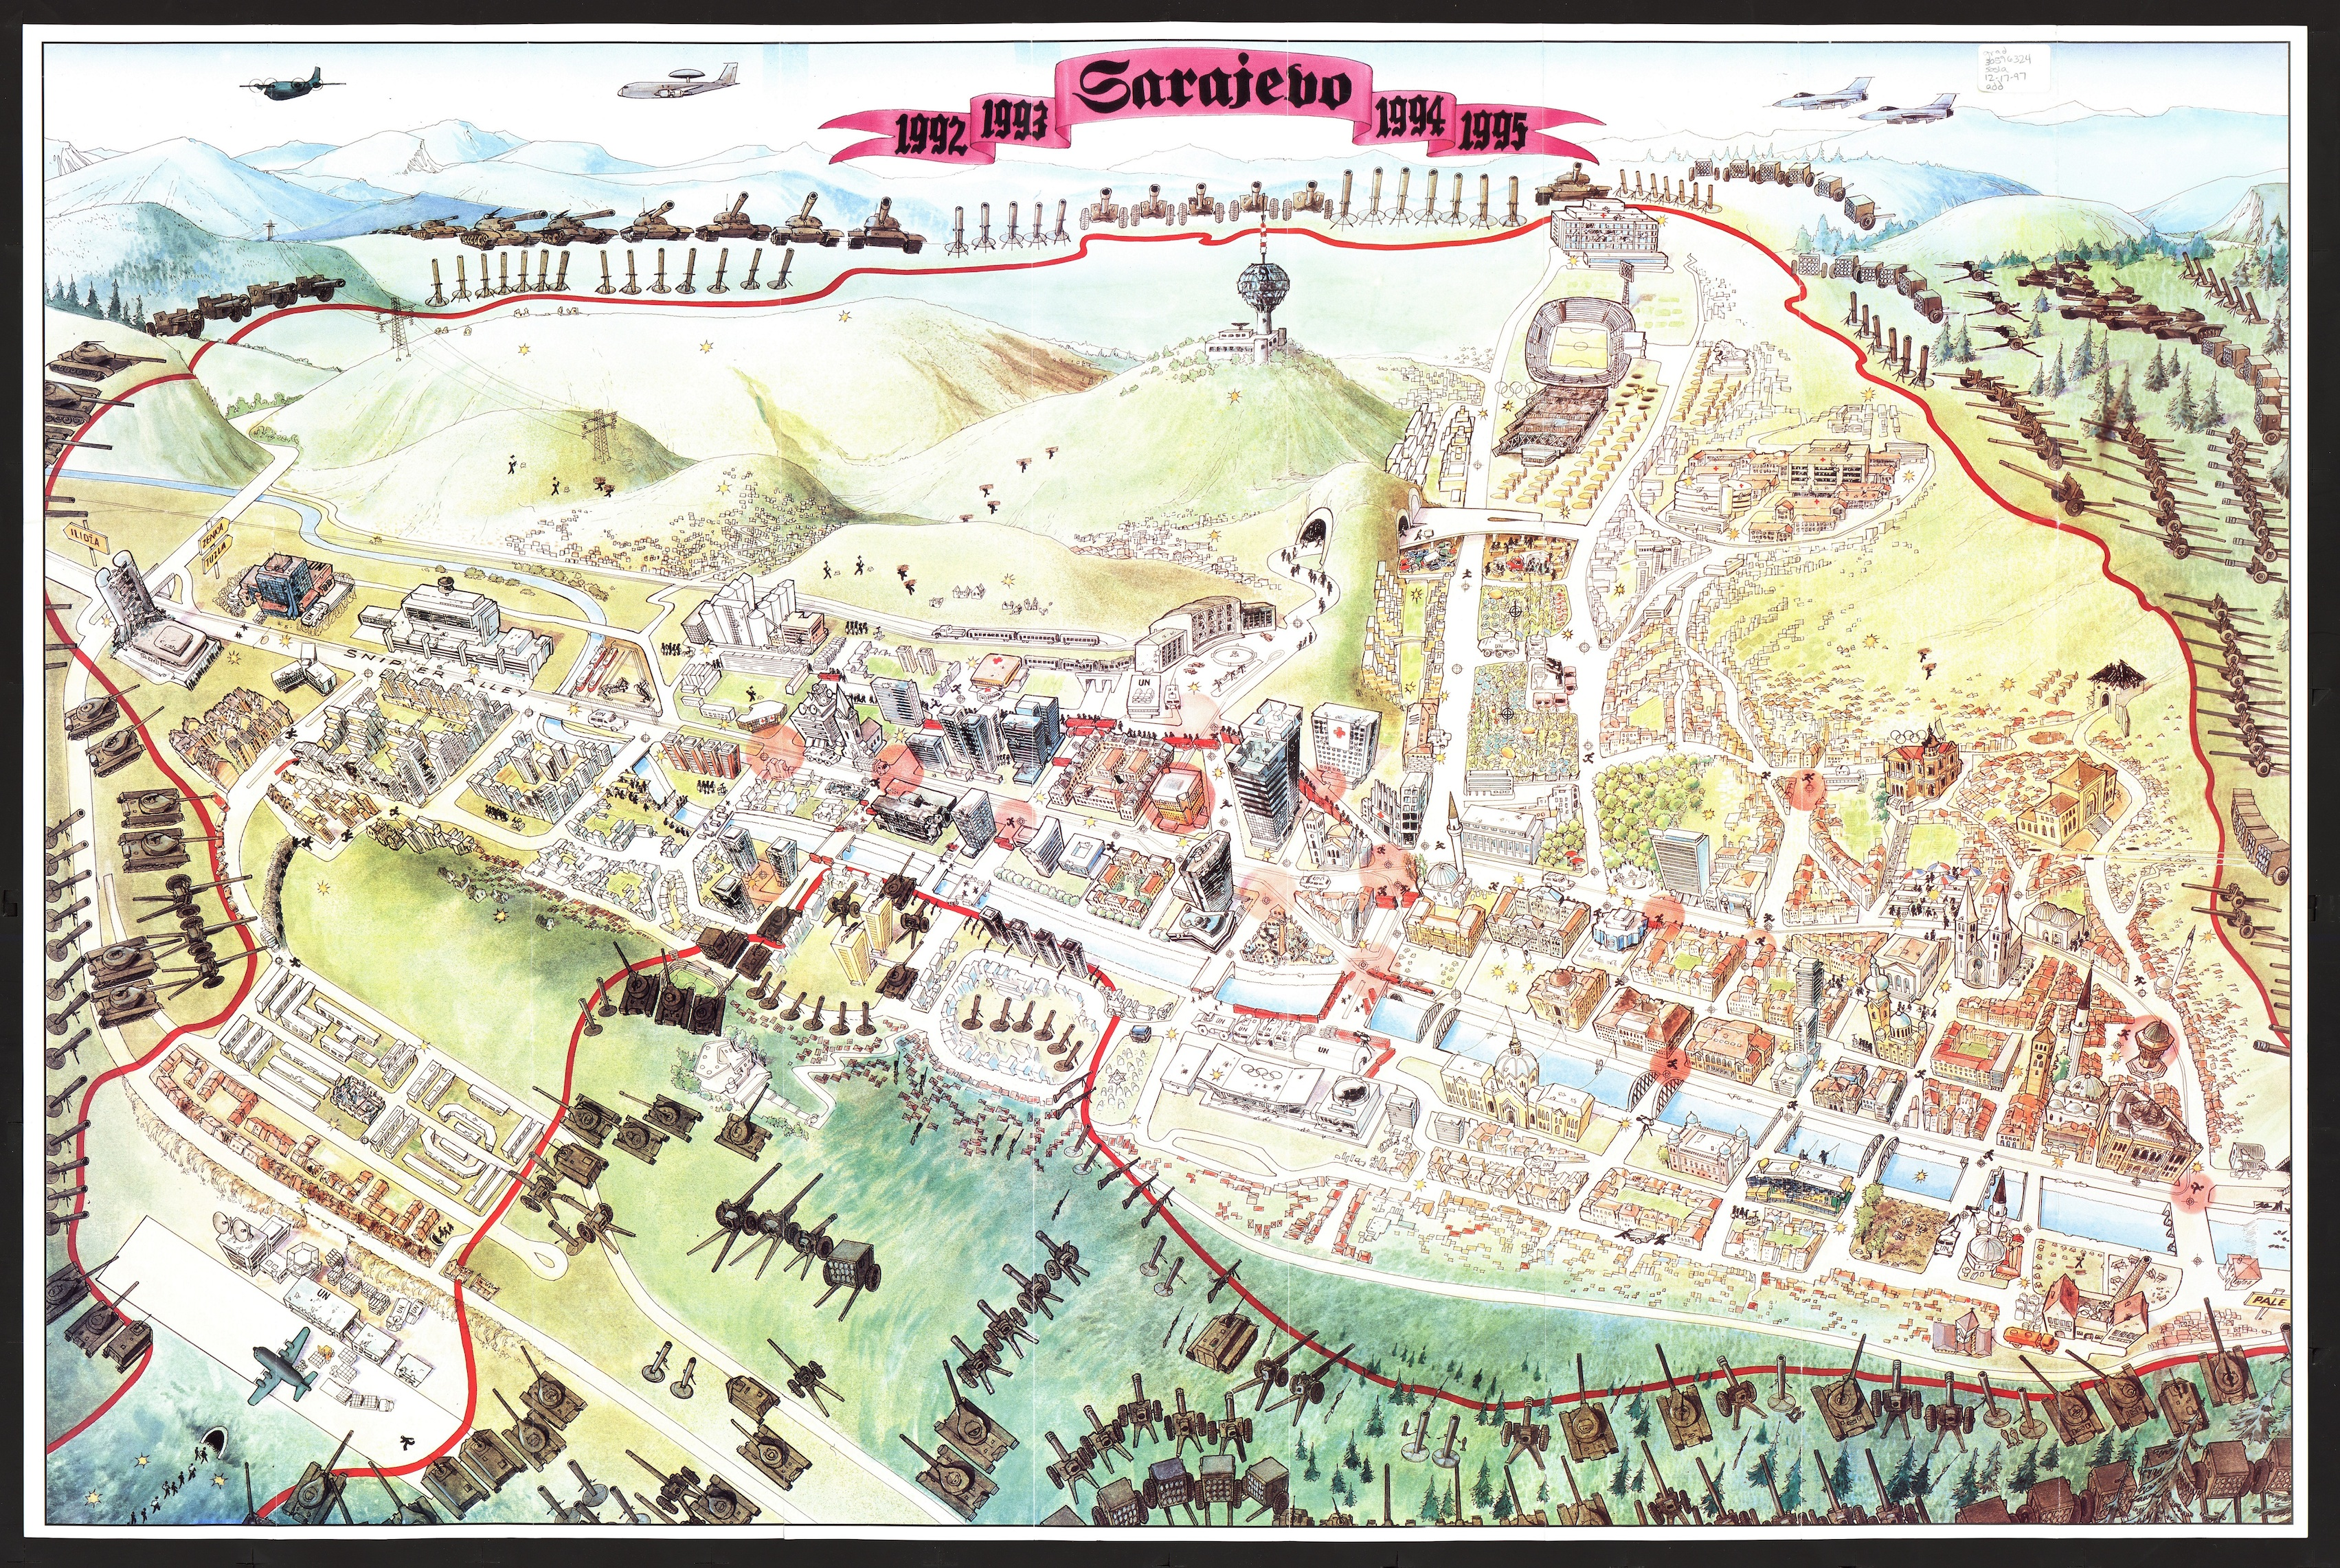 Satirical map of Sarajevo in the mid 1990s.